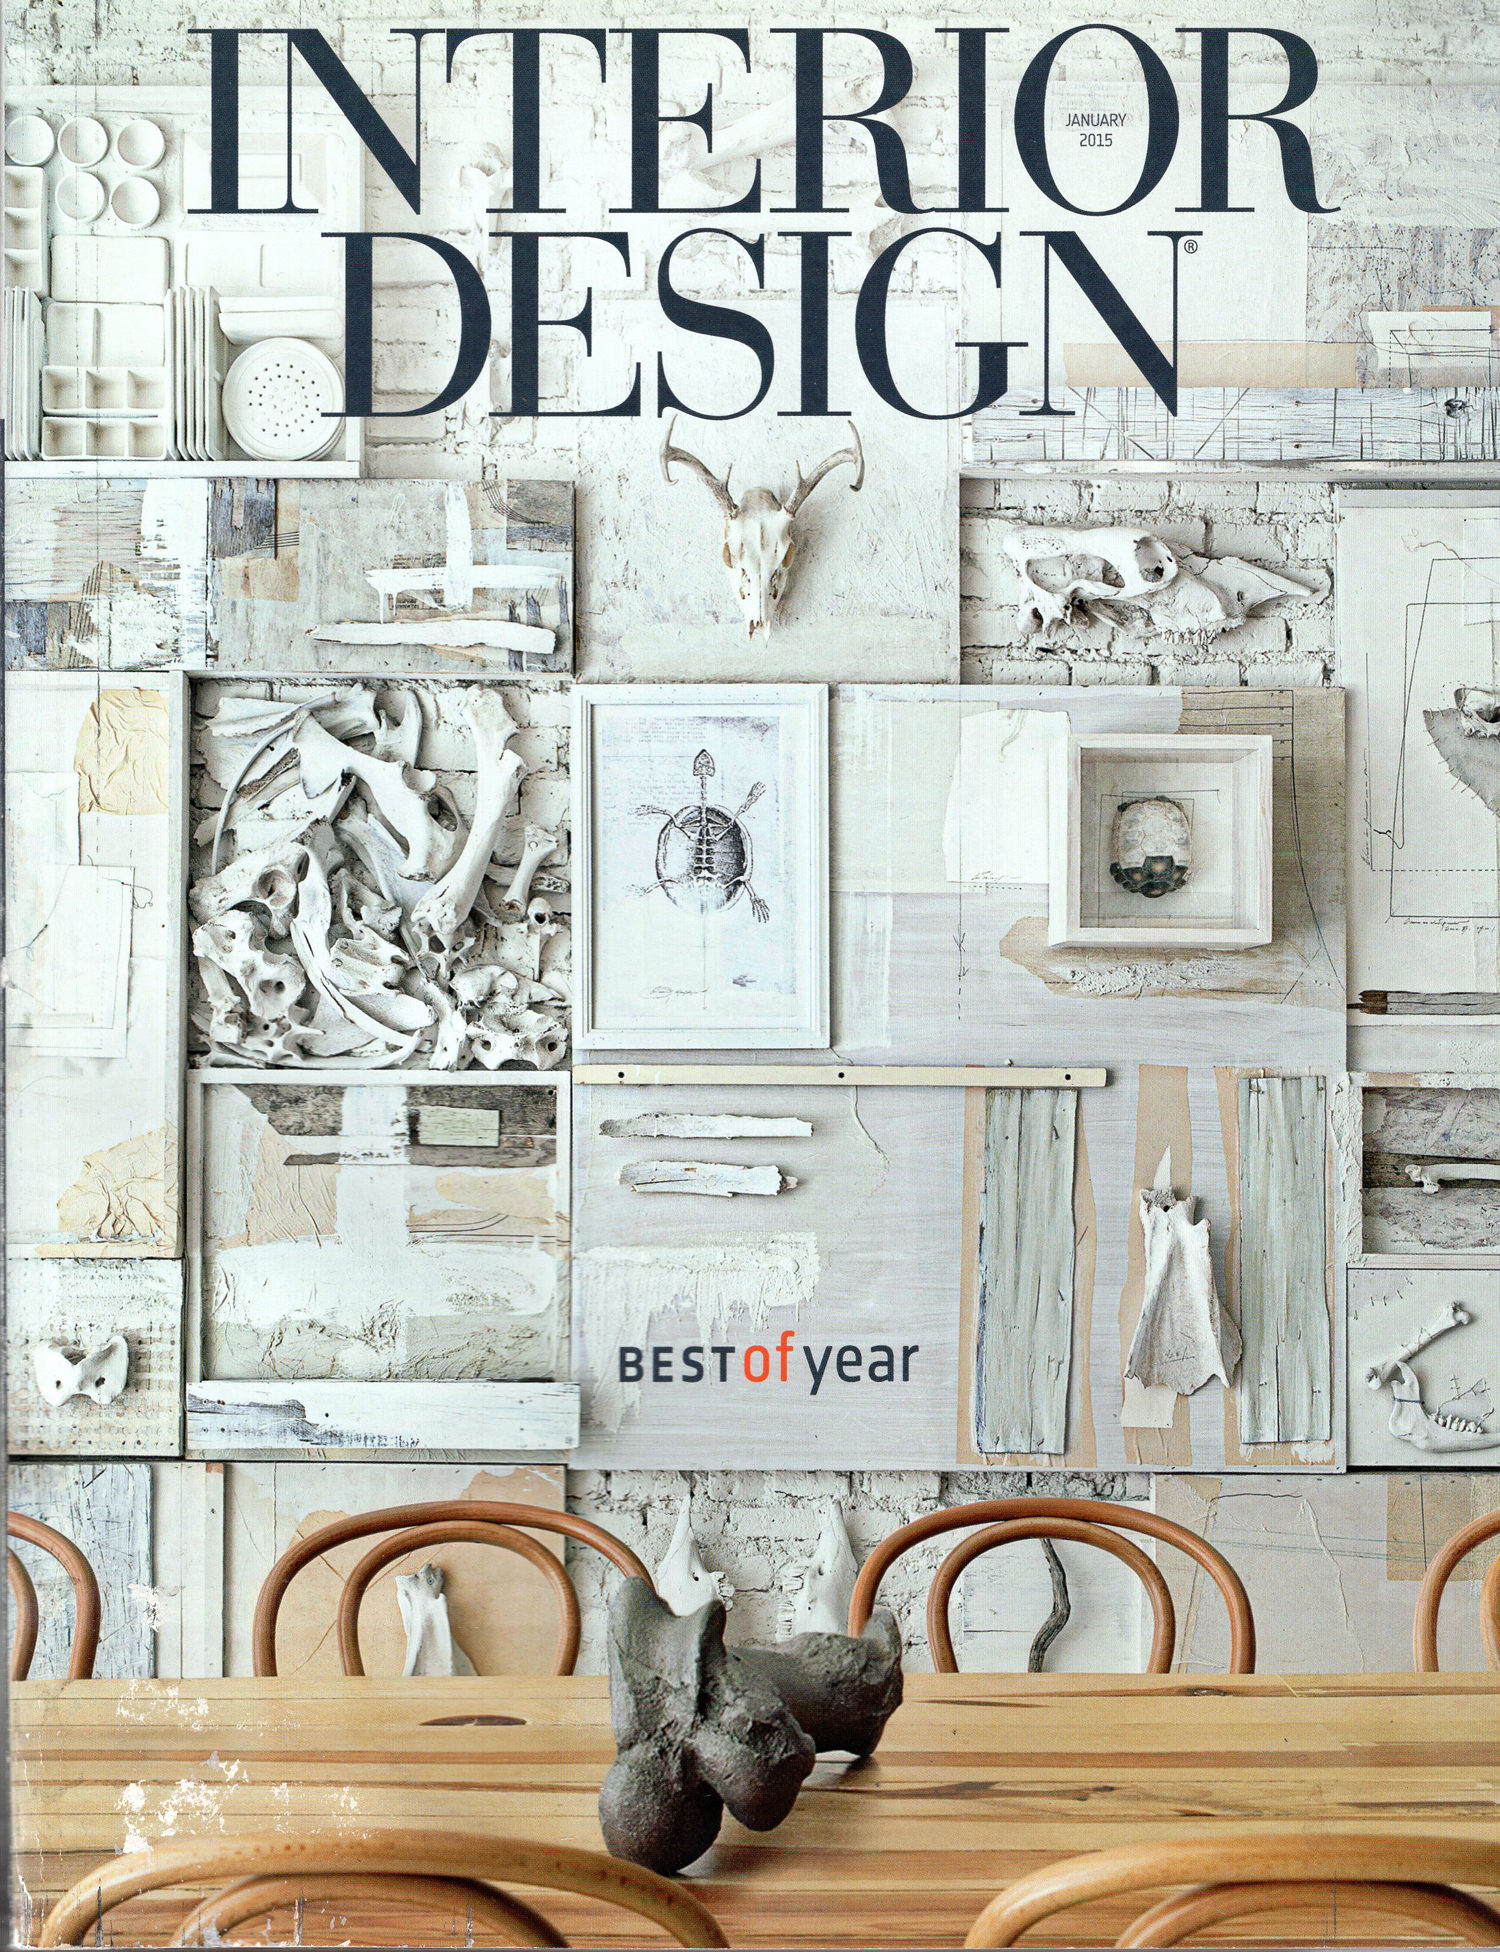 Interior Design -  Best of Year